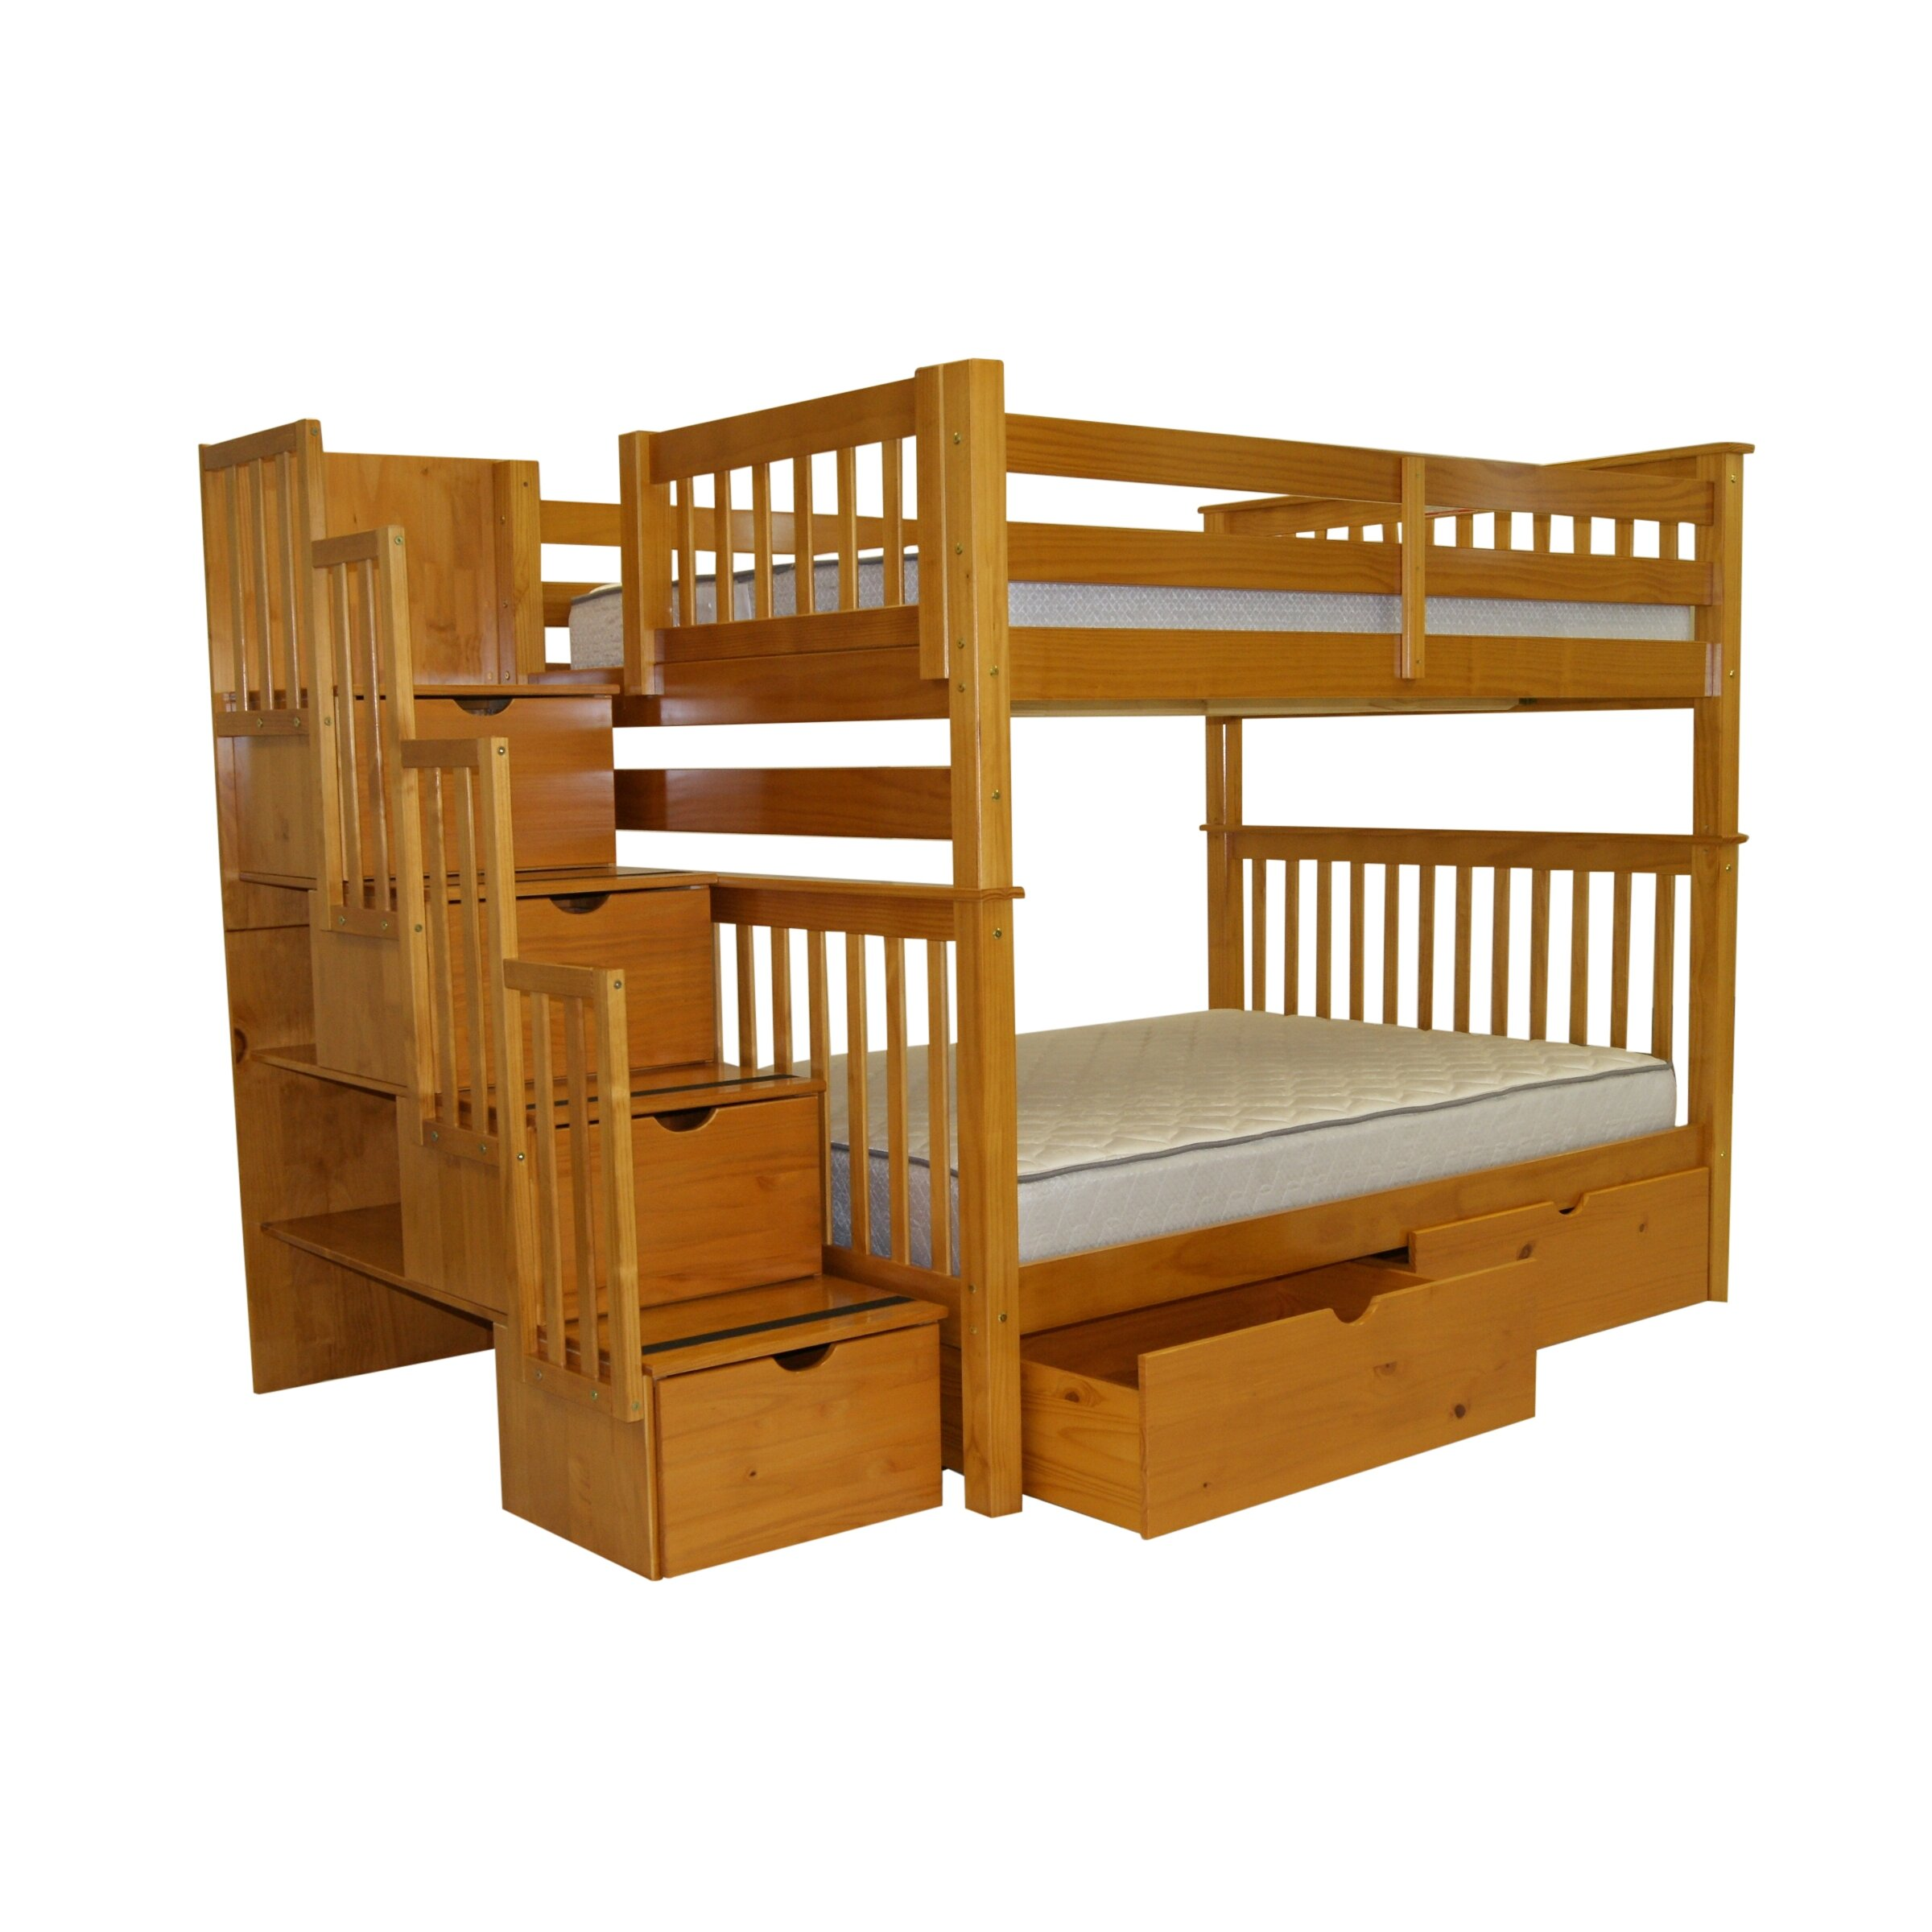 Pine bunk beds with storage - Bedz King Full Over Full Bunk Bed With Storage